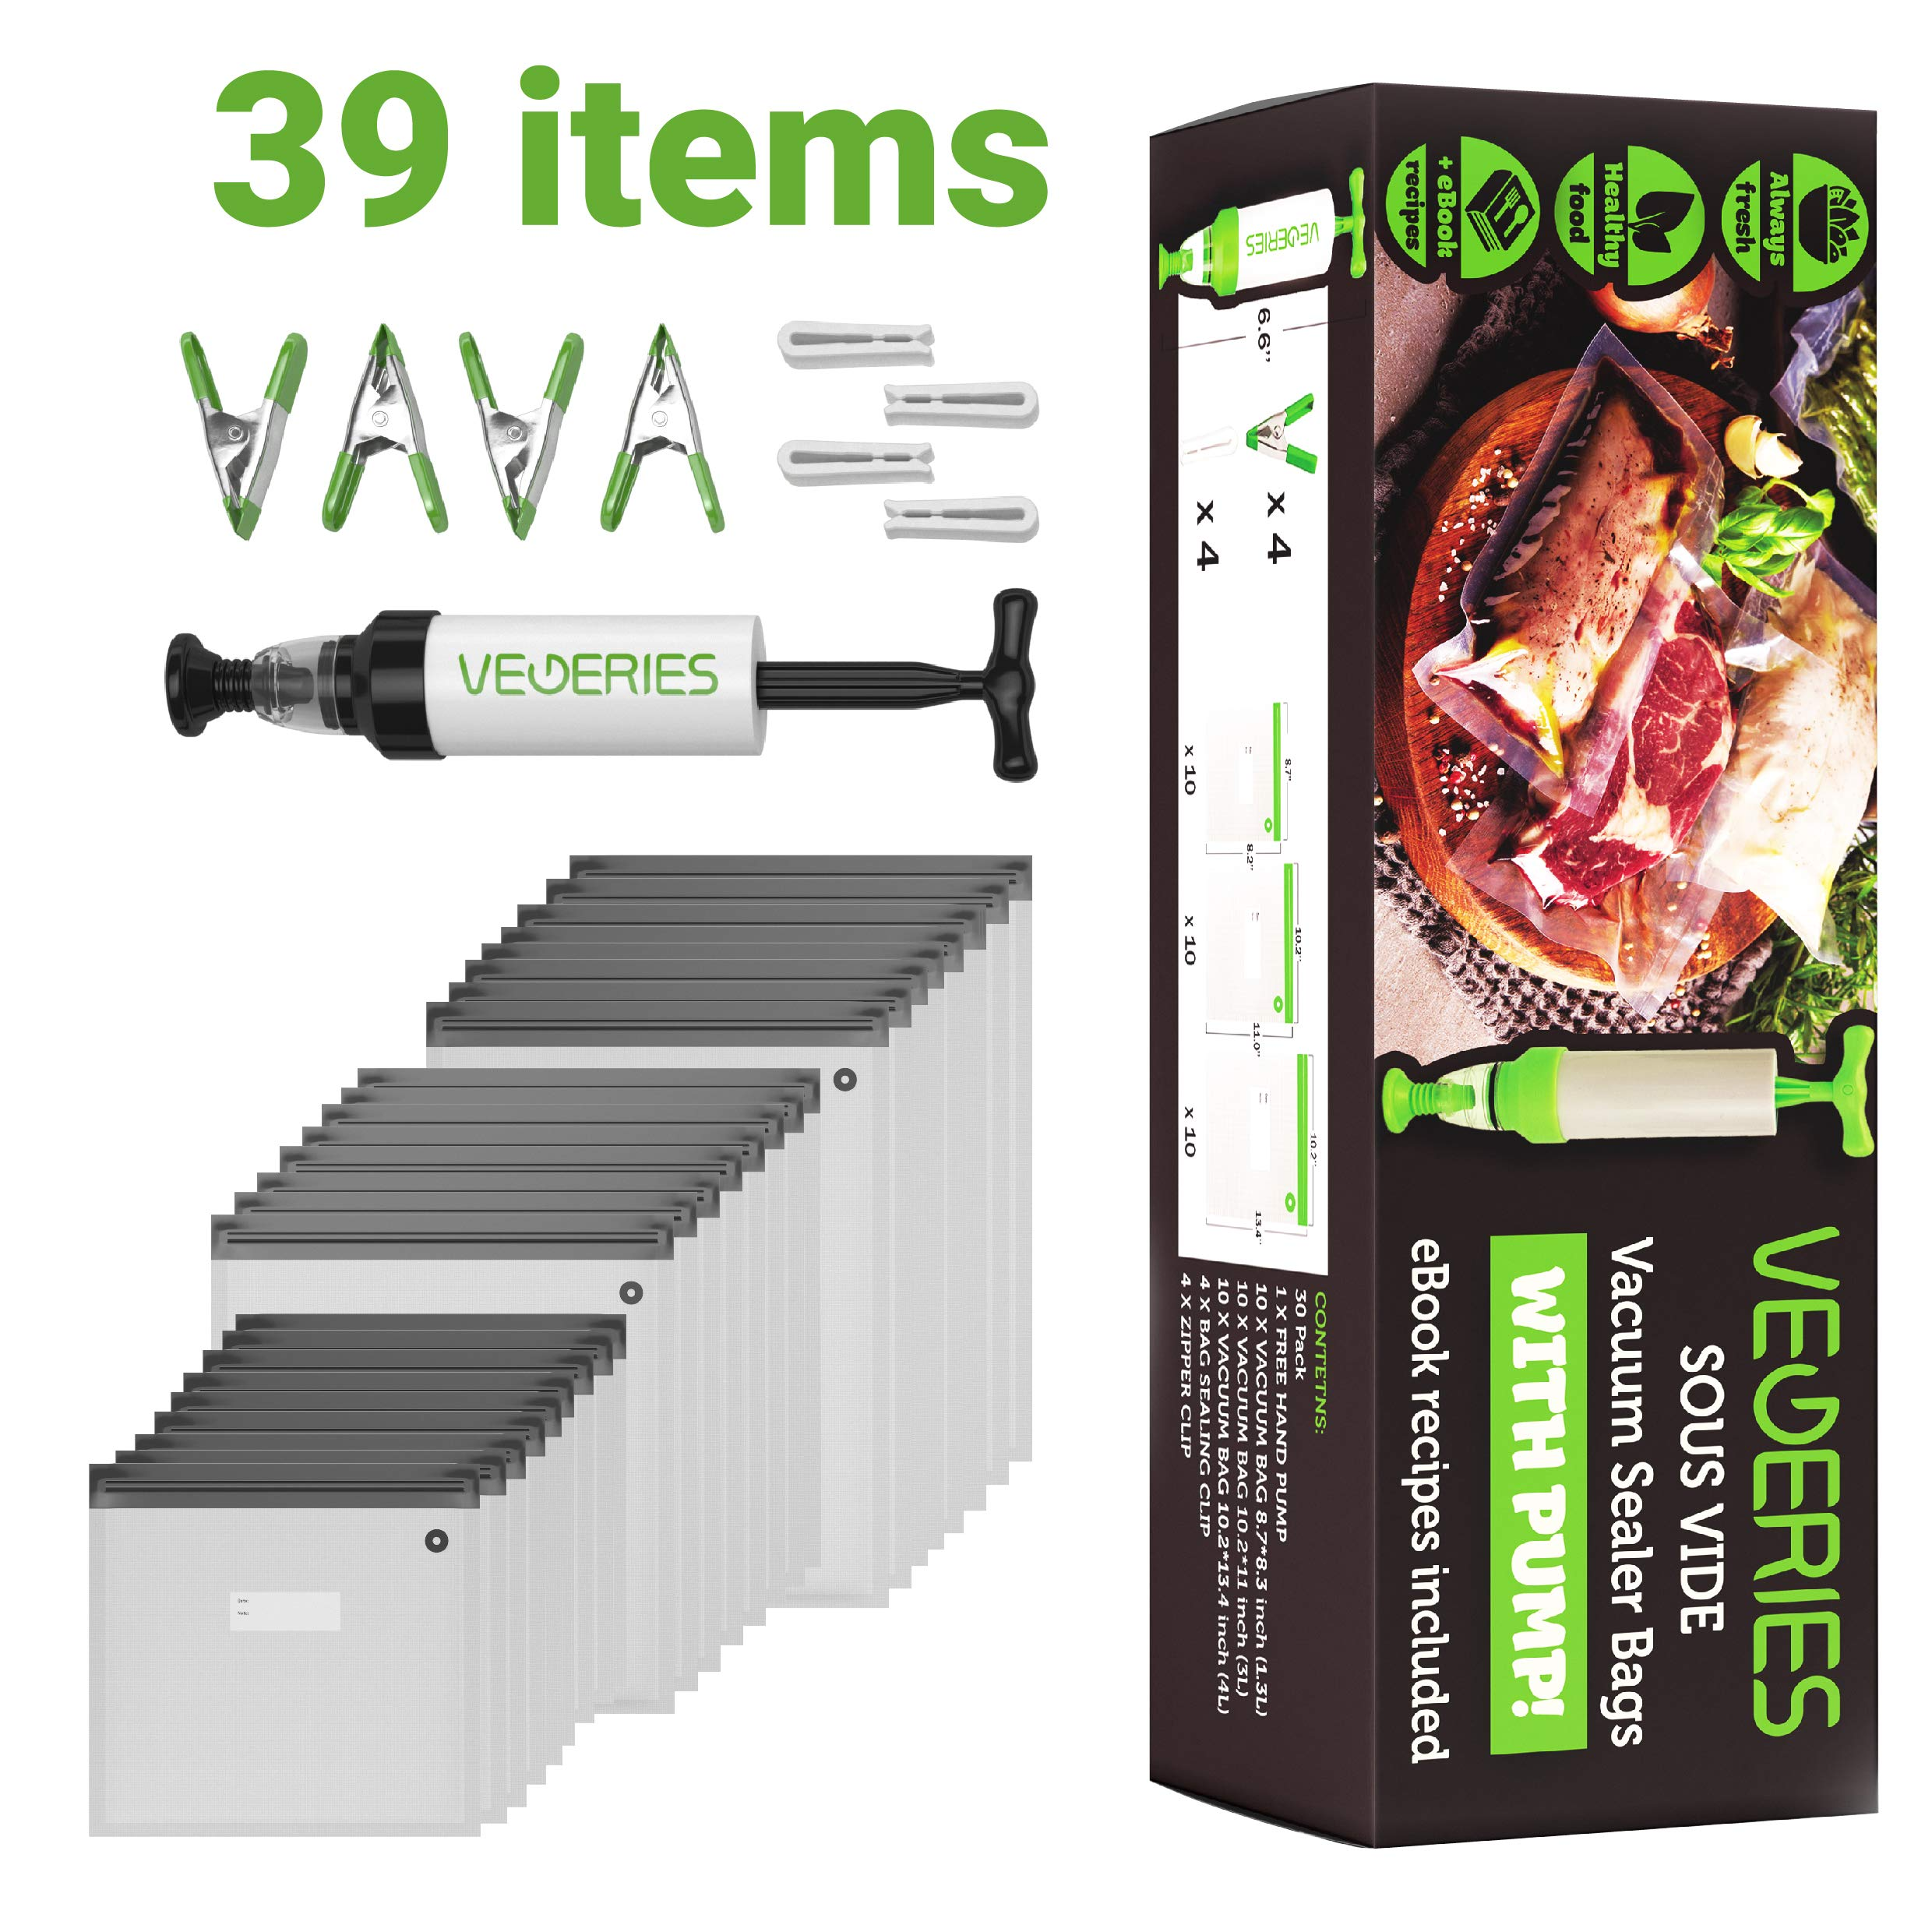 Sous Vide Bags 30 Reusable Vacuum Food Storage Bags for Anova and Joule Cookers - 3 sizes Sous Vide Bag Kit with Pump - 4 Sealing Clips - 4 Sous Vide Bag Clips for Food Storage and Sous Vide Cooking